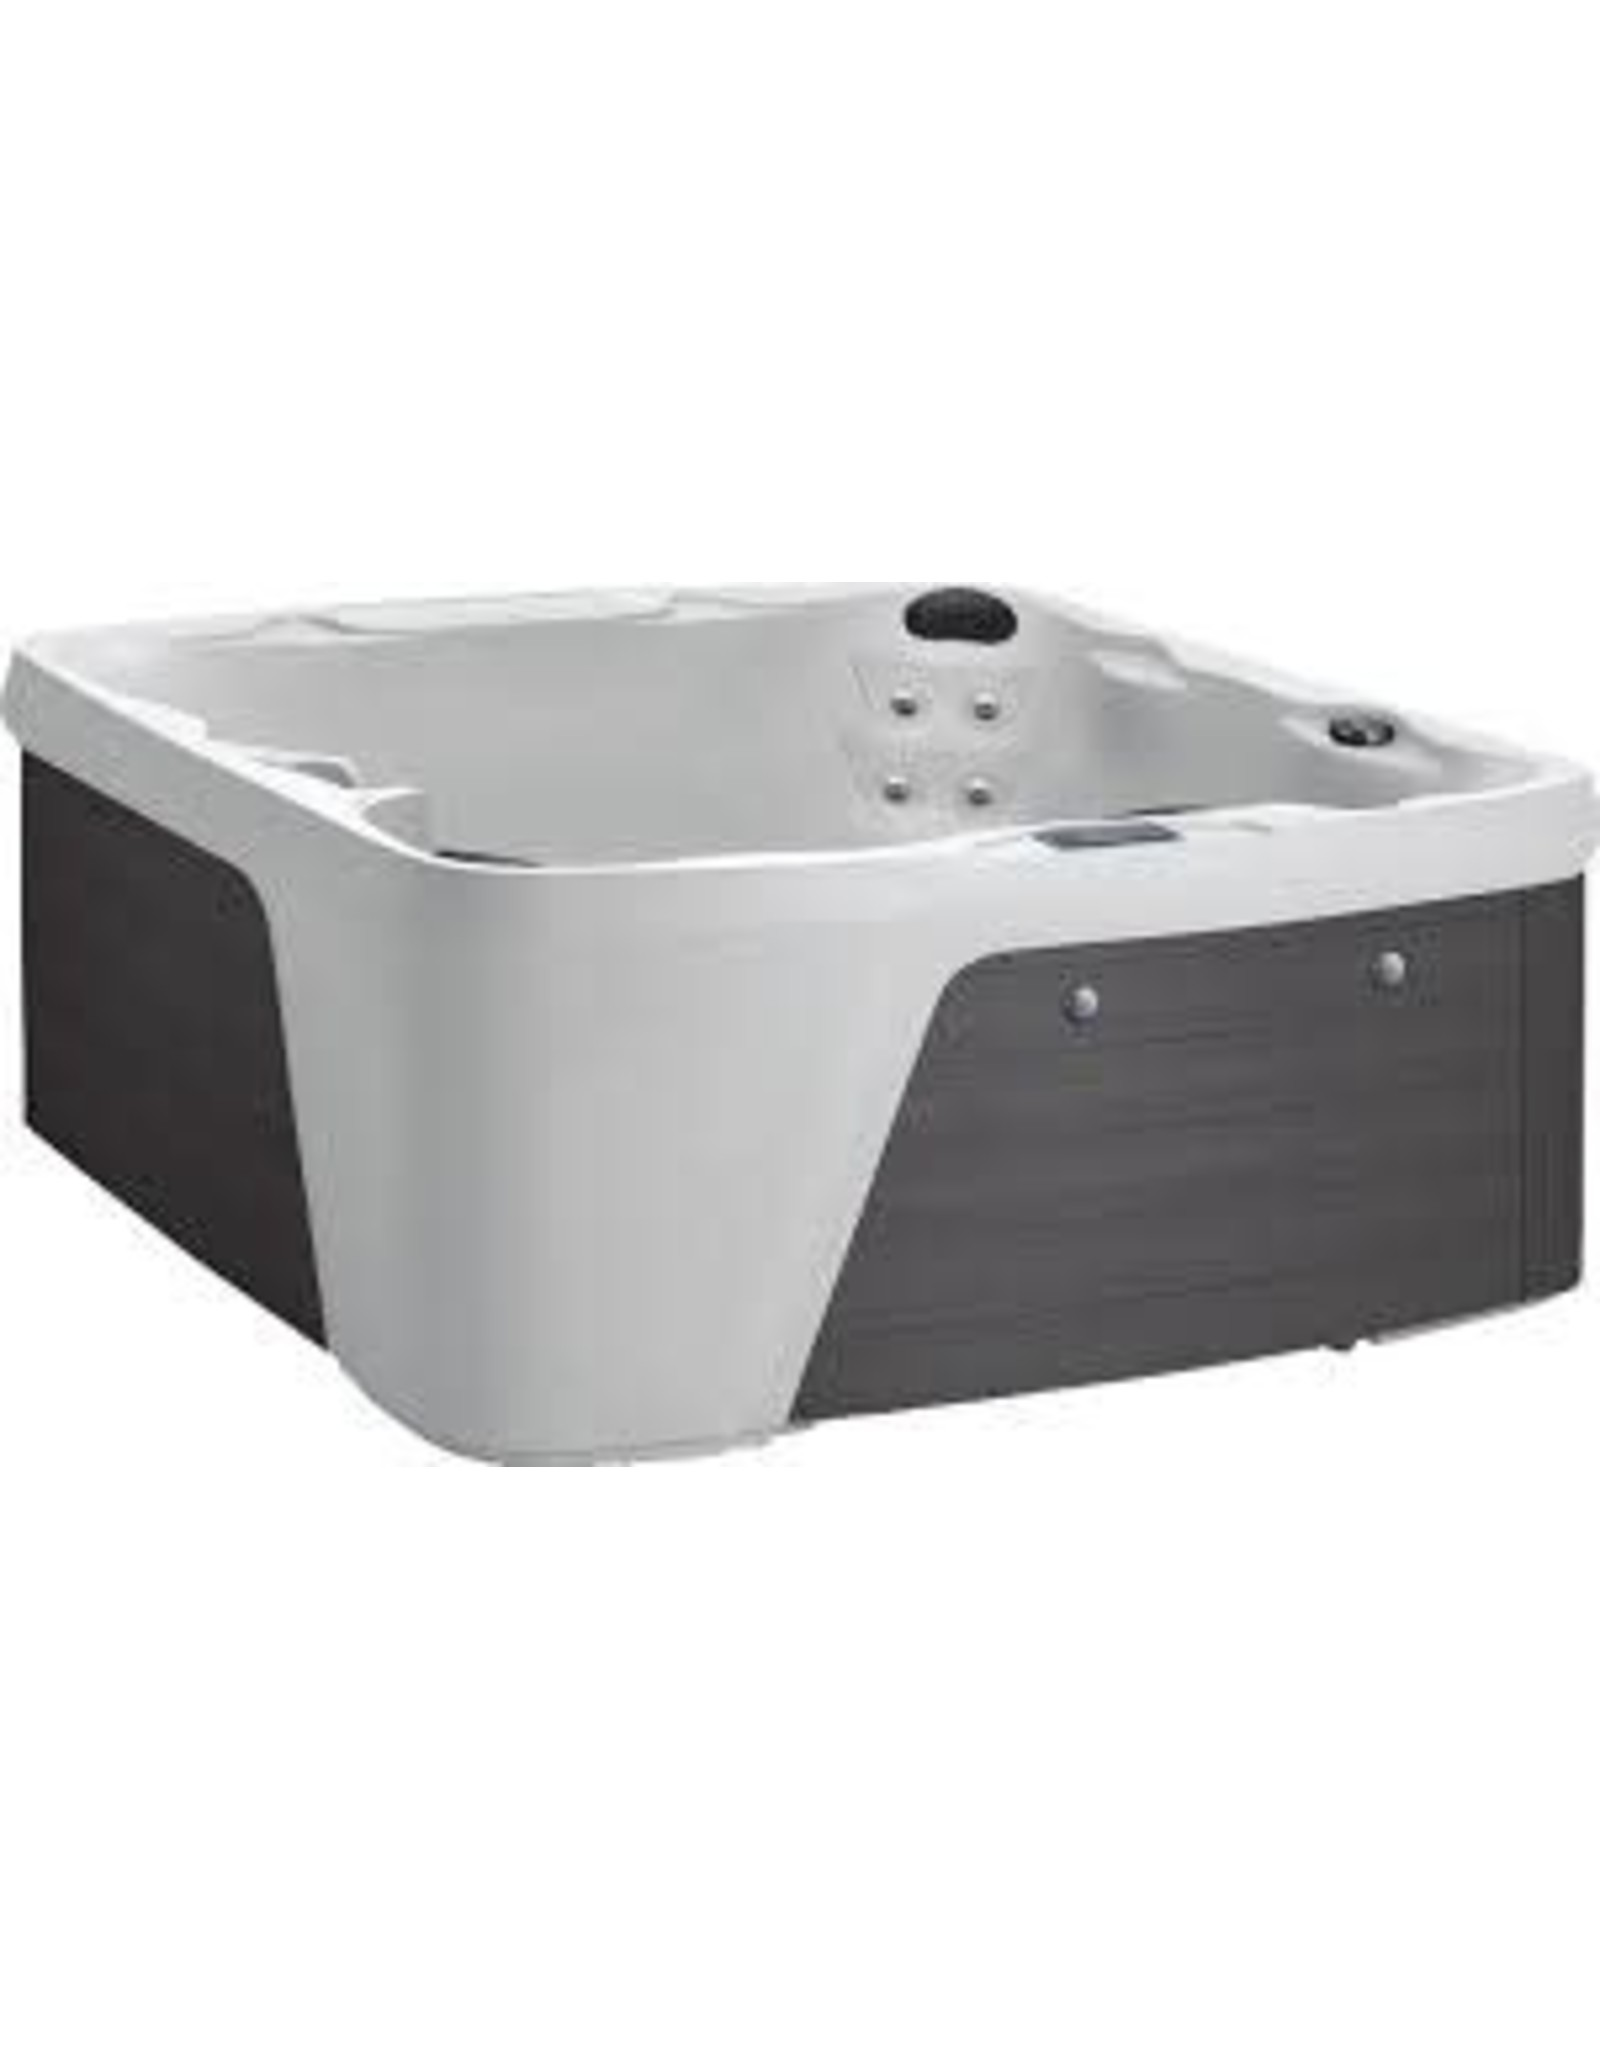 "Freeflow Spas Freeflow Spas ( monterey premium ) 7'3"" X 6'5"" X 34""H ( arctic grey )"